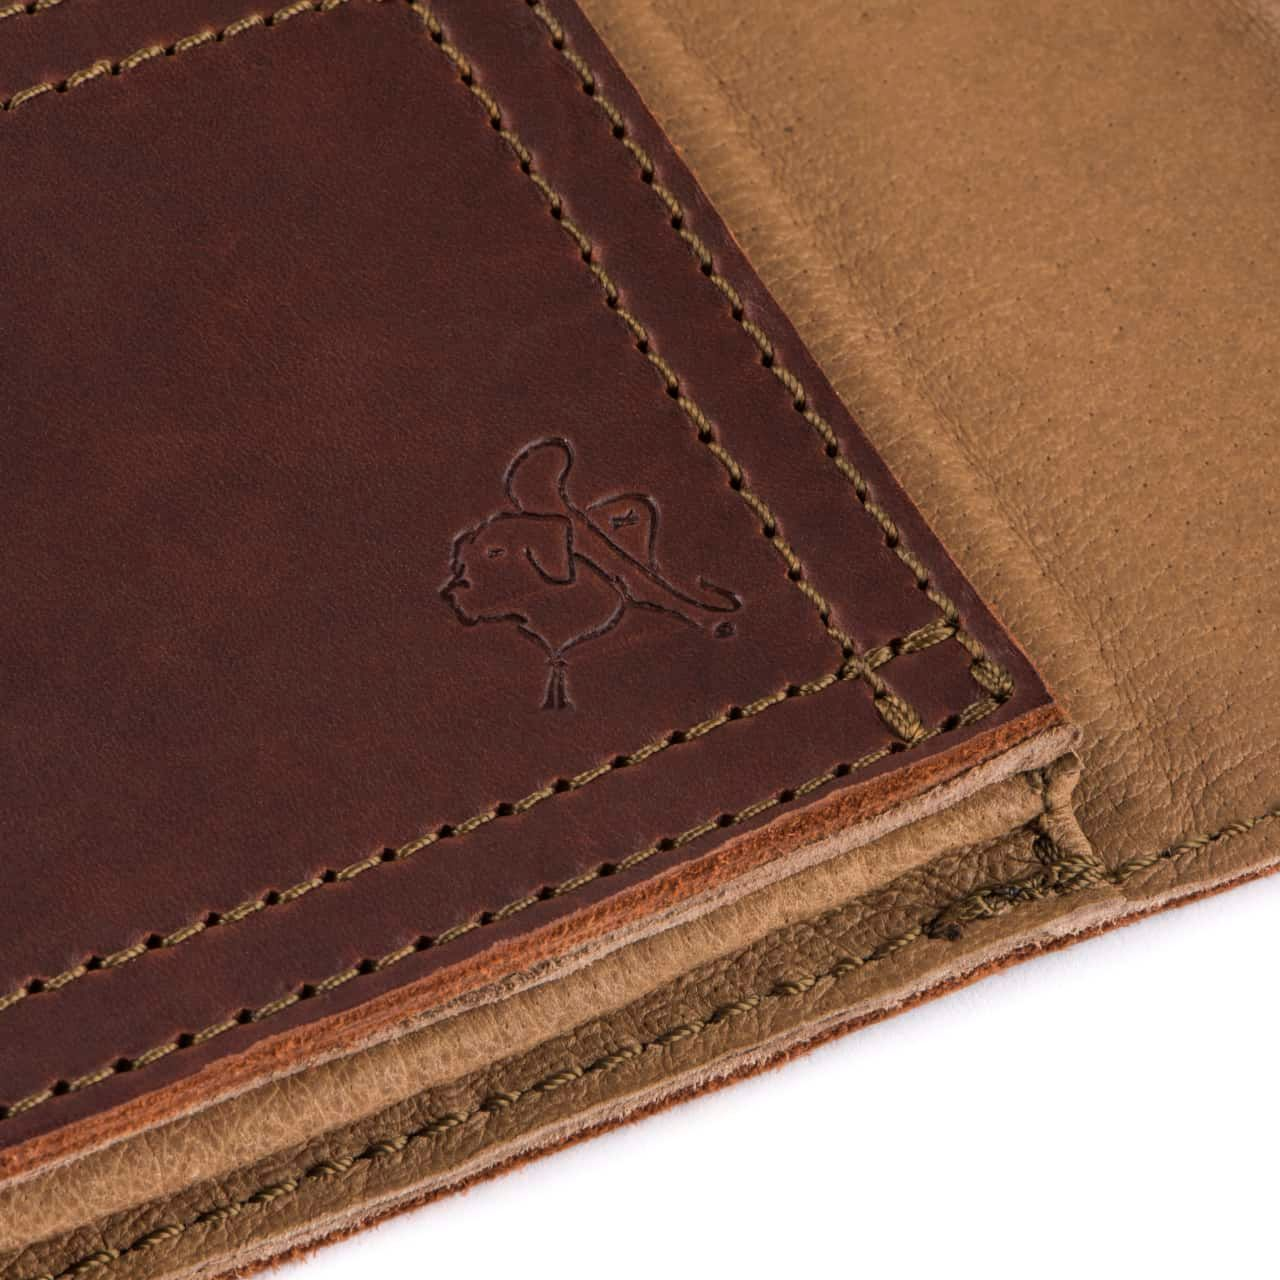 Leather Tablet Notepad Holder Zoomed in on Blue the Dog Stamp in the Color Chestnut